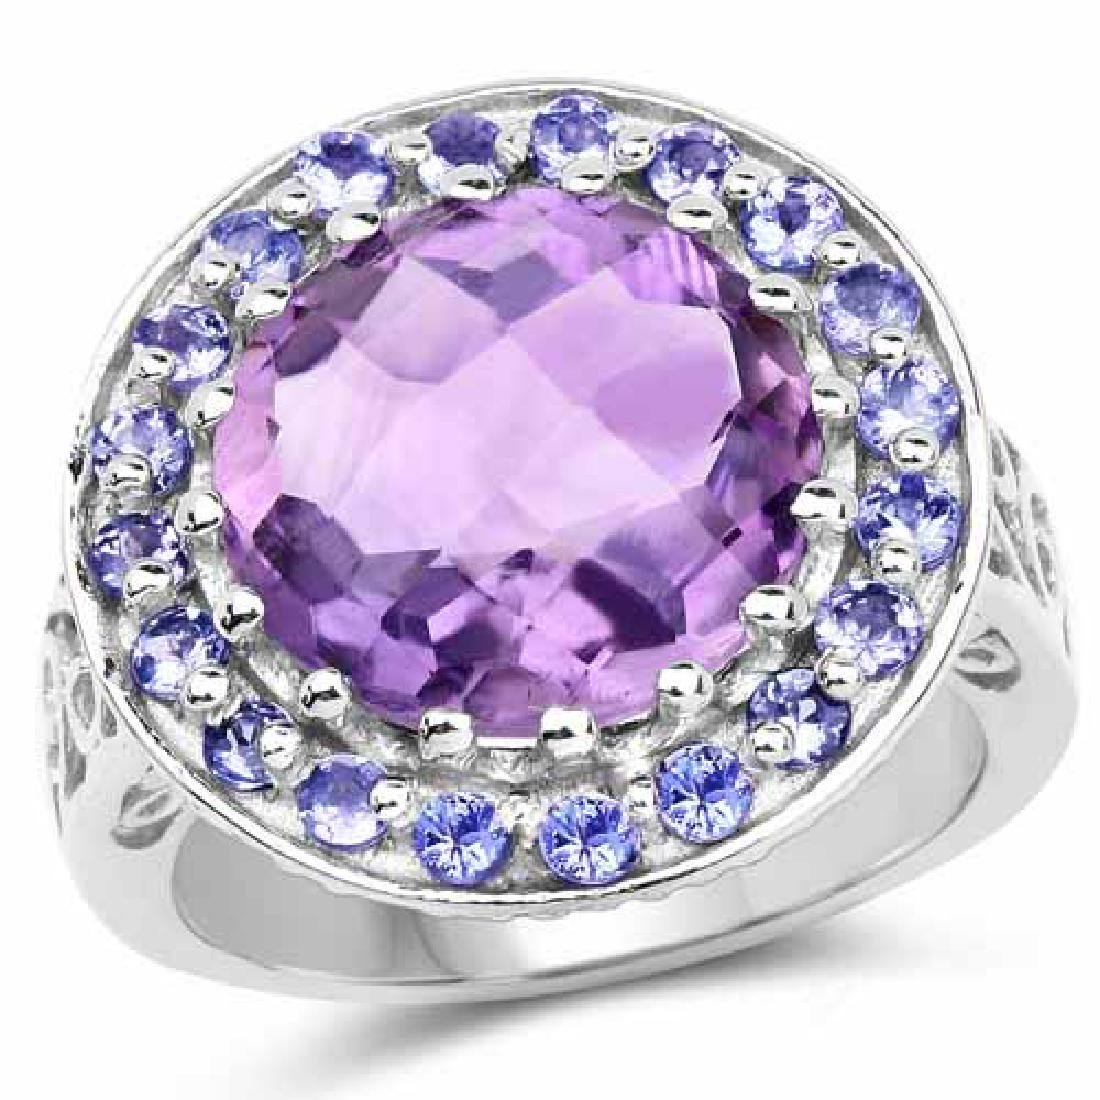 5.95 Carat Genuine Amethyst and Tanzanite .925 Sterling